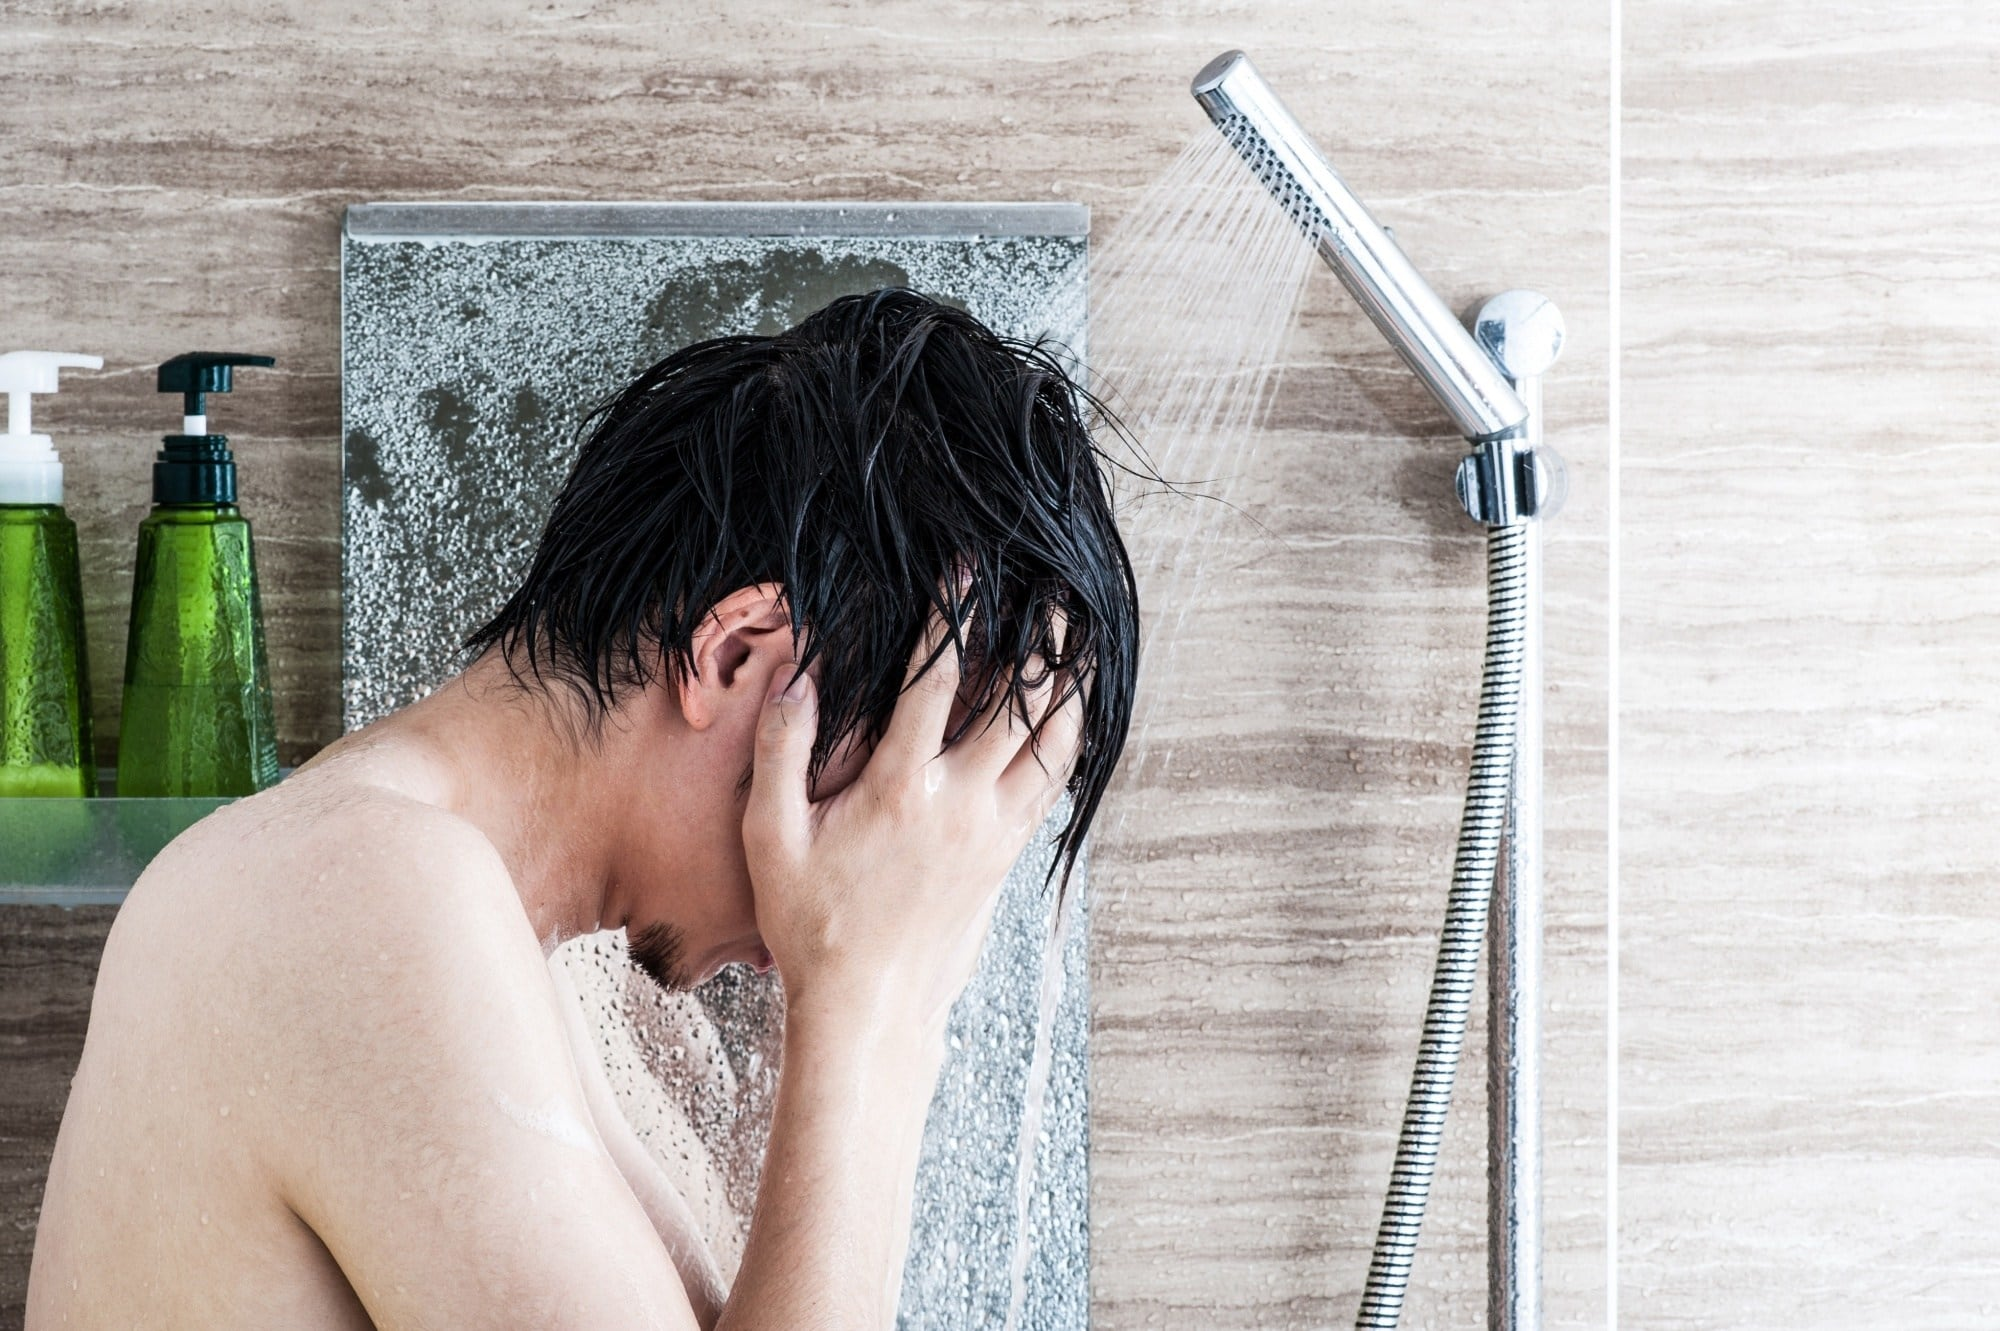 Hair care tips for men: Man covering her face in the shower